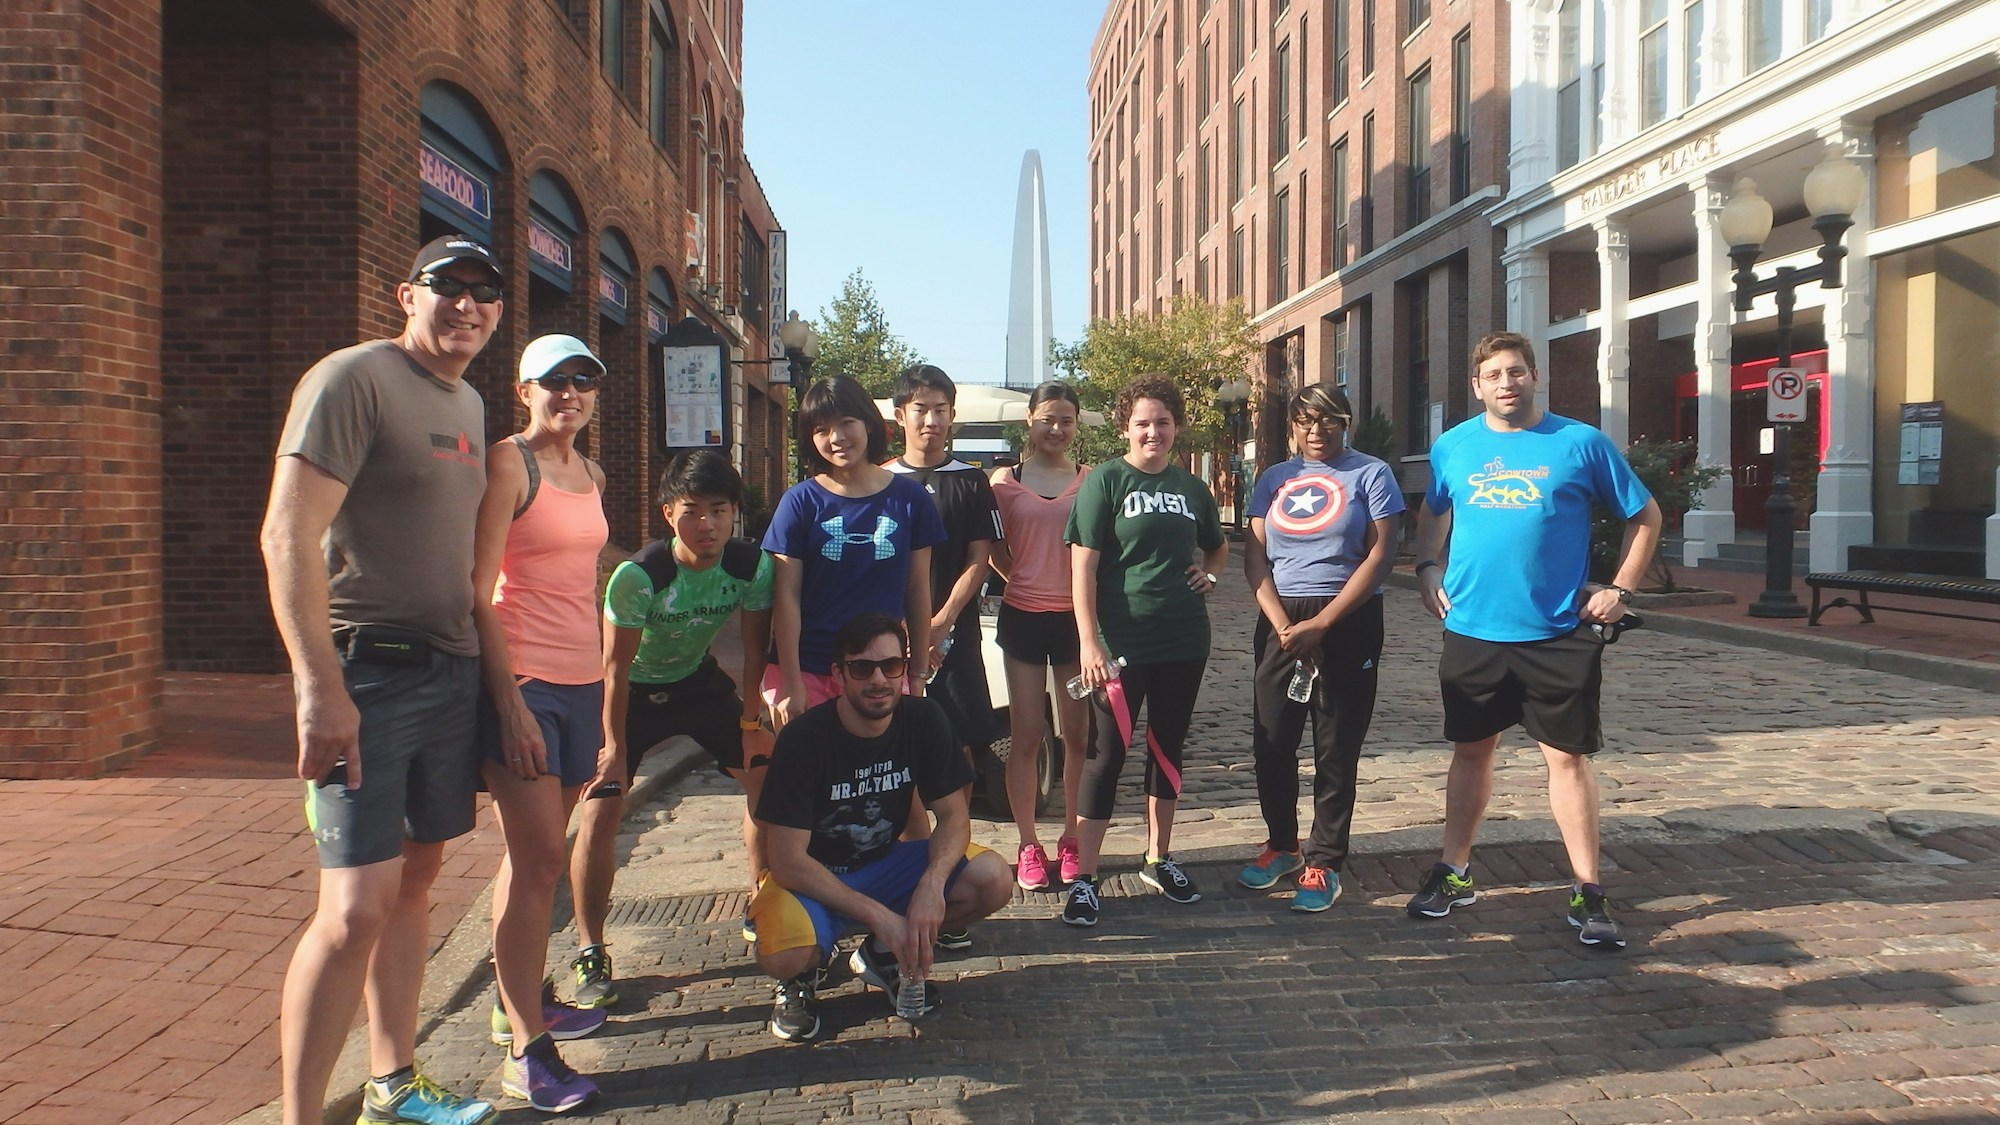 Glasregal Zigzag+atlas St Louis Running Tour History On Foot Terrain Magazine